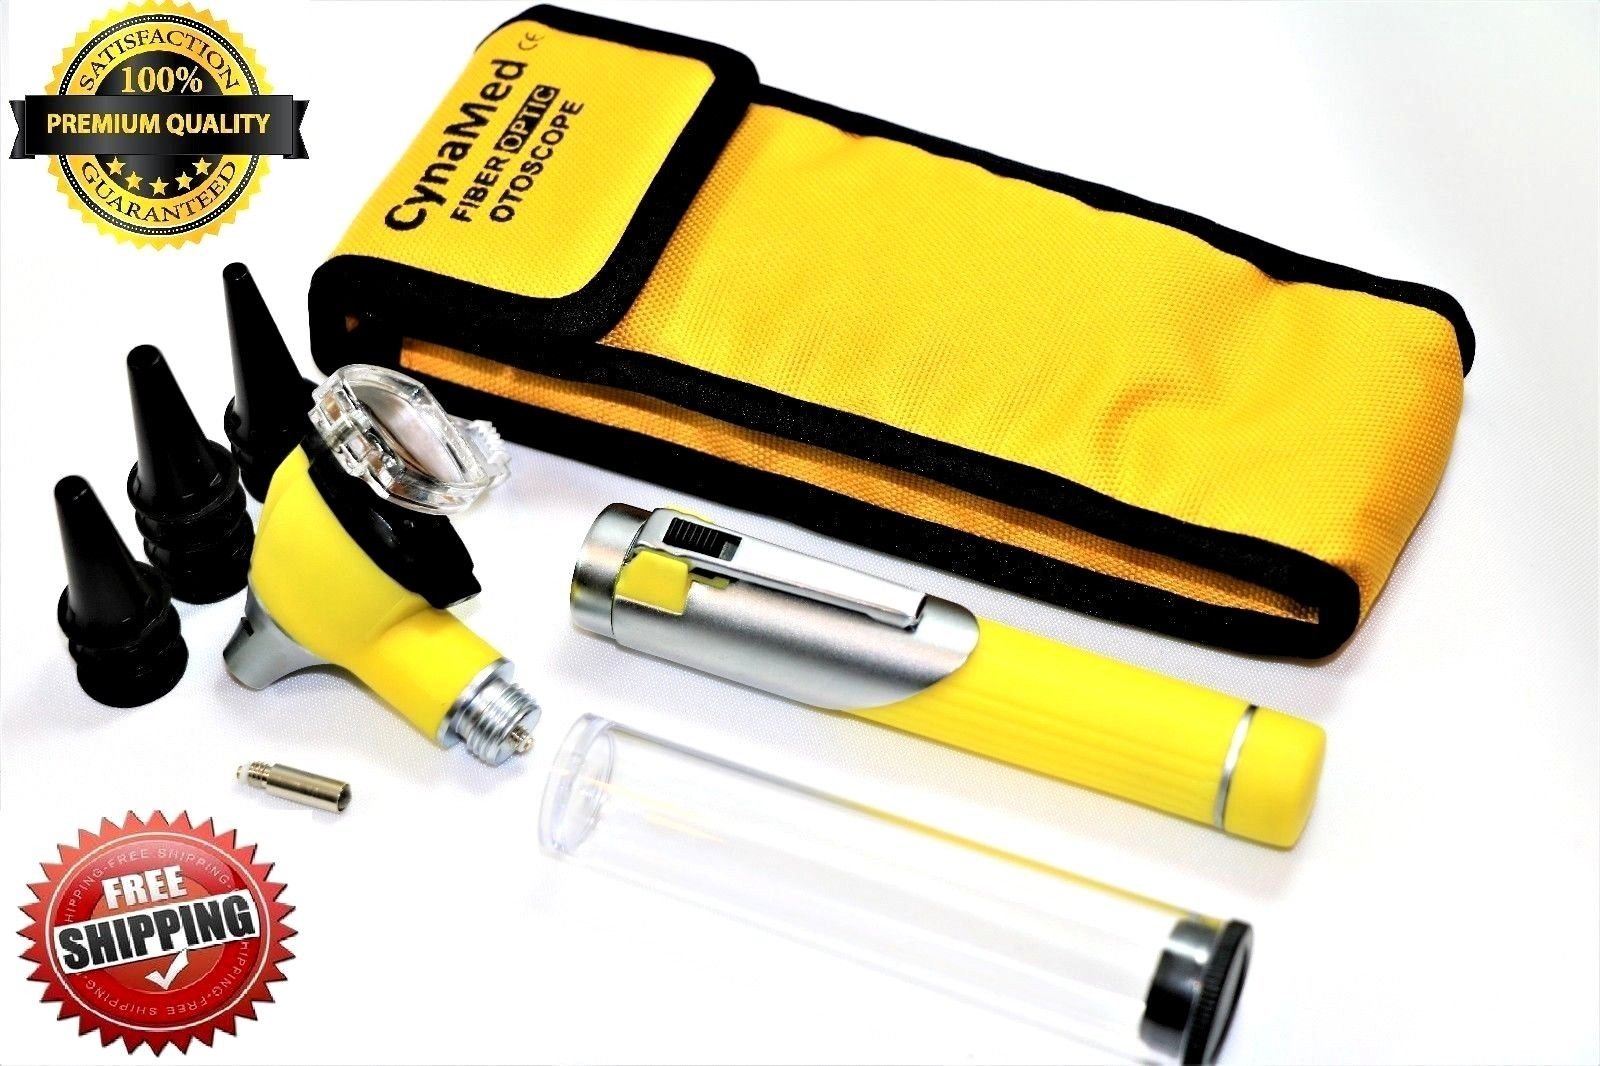 Premium STUDENT HOME USE LED Bright Light ENT Diagnostic Otoscope Pocket Size ( YELLOW) + 1 Free Extra Replacement Bulb ( CYNAMED )